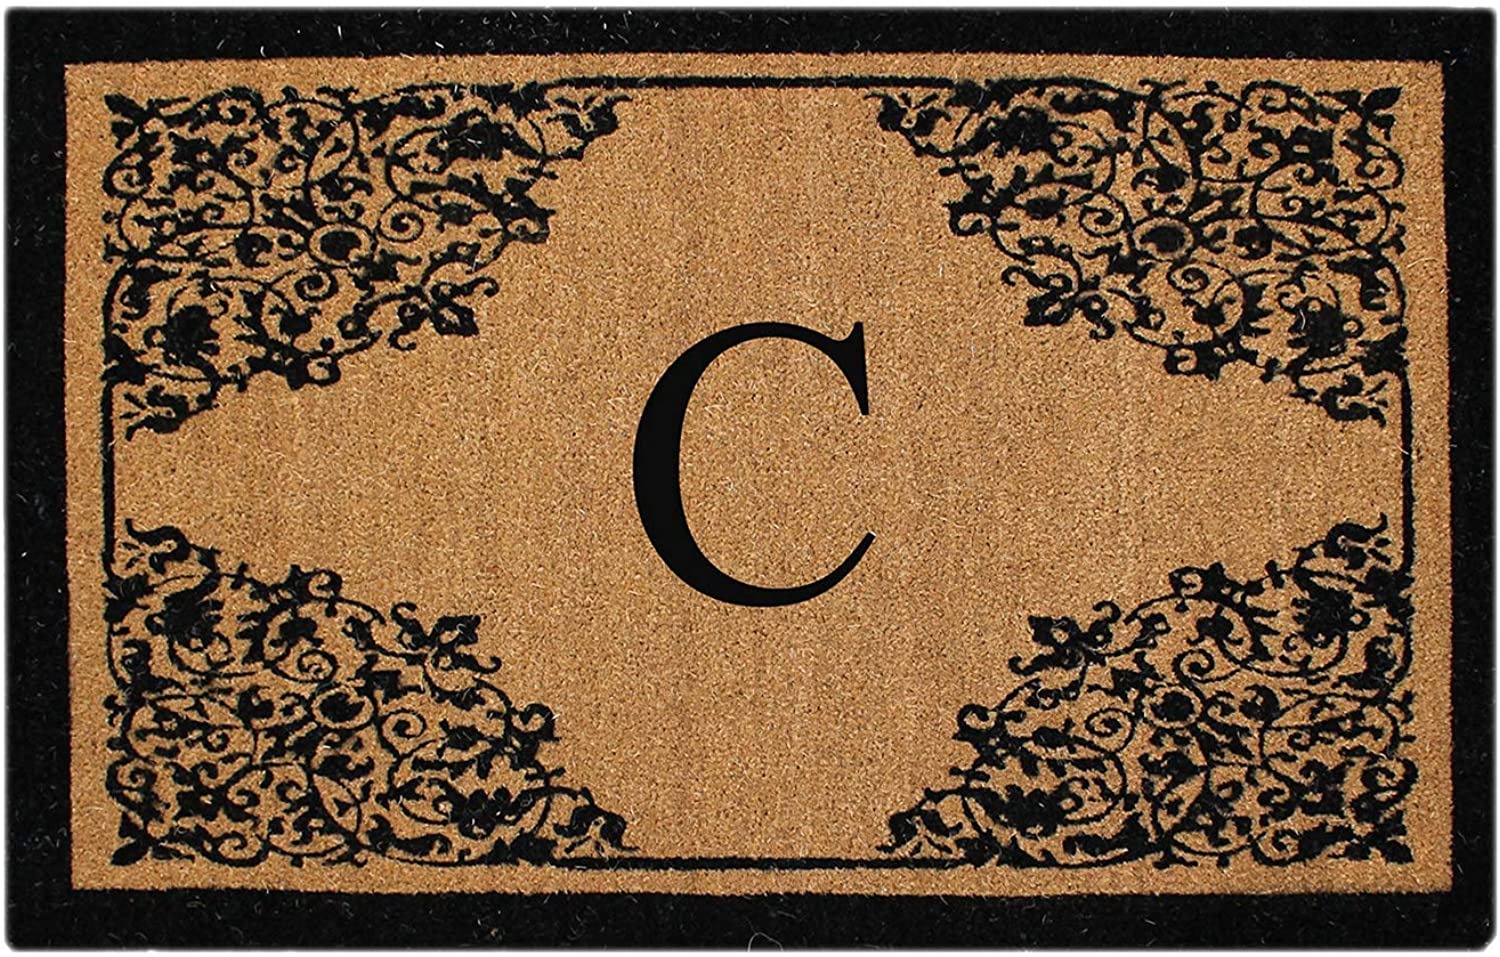 A1 HOME COLLECTIONS PT4013-CA1HC First Impression Monogram Hand Crafted by Artisans Floral Large Doormat, 30  x 48 , Beige Black